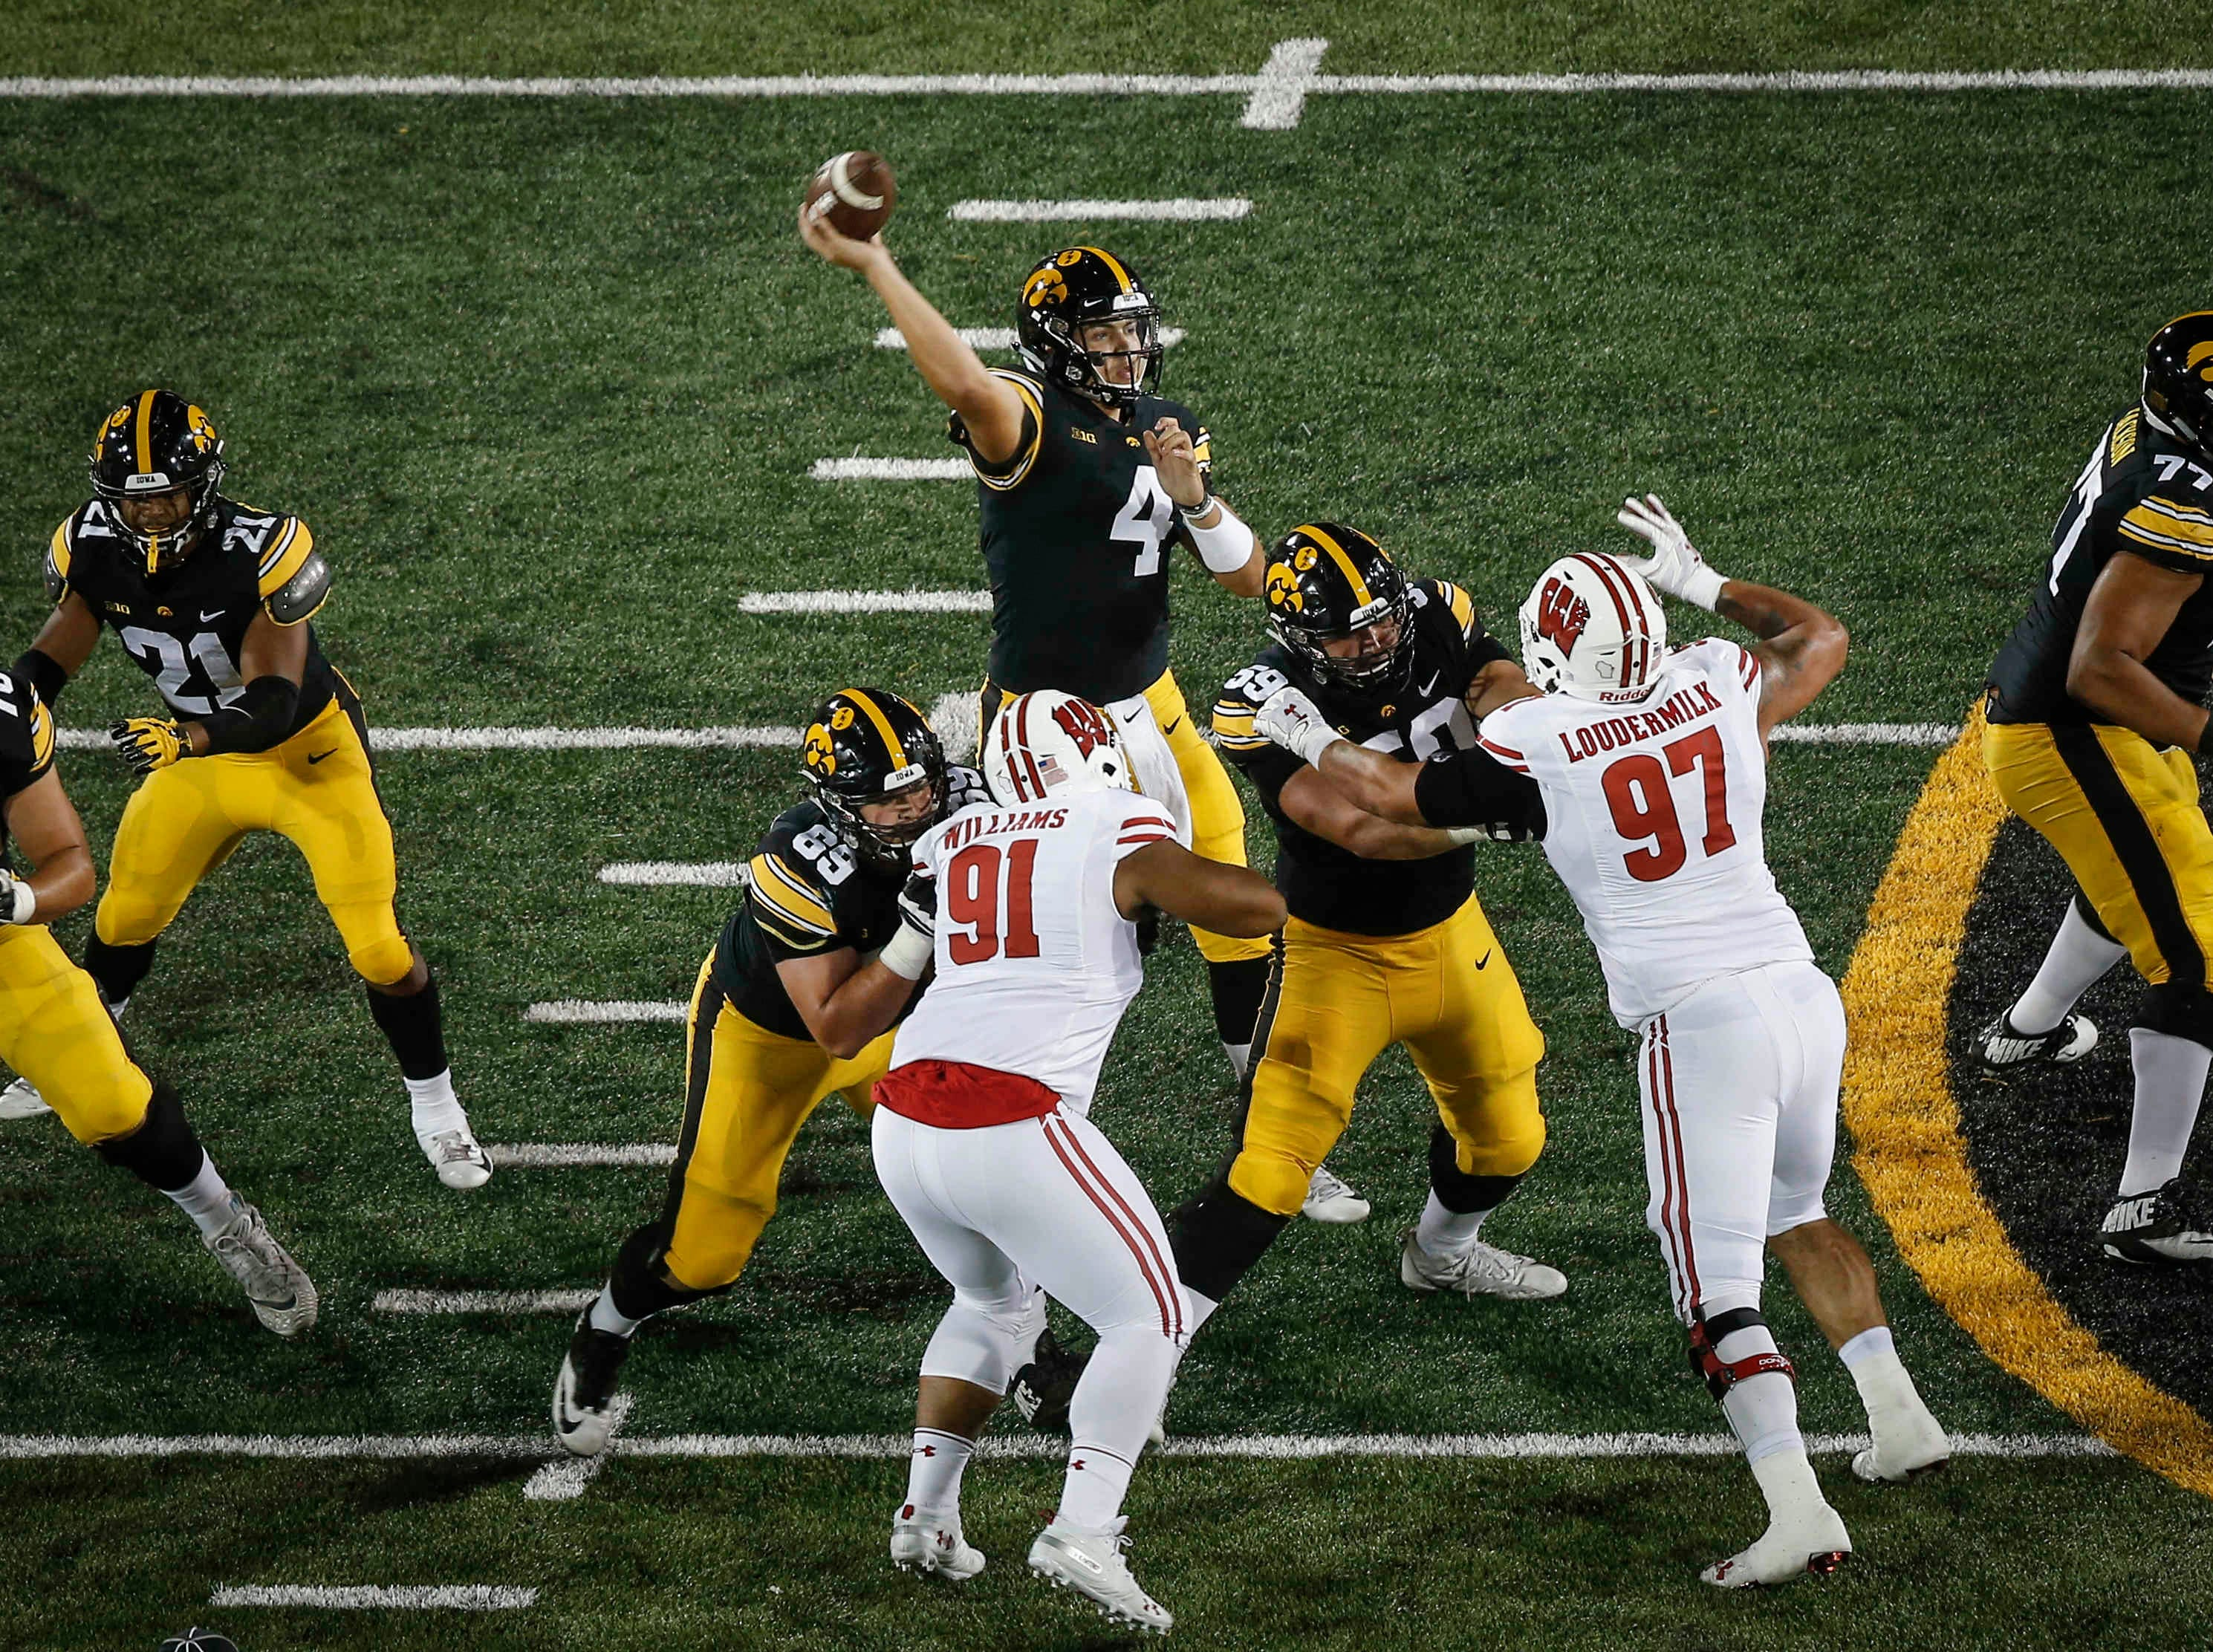 Iowa junior quarterback Nate Stanley fires a pass against Wisconsin on Saturday, Sept. 22, 2018, at Kinnick Stadium in Iowa City.